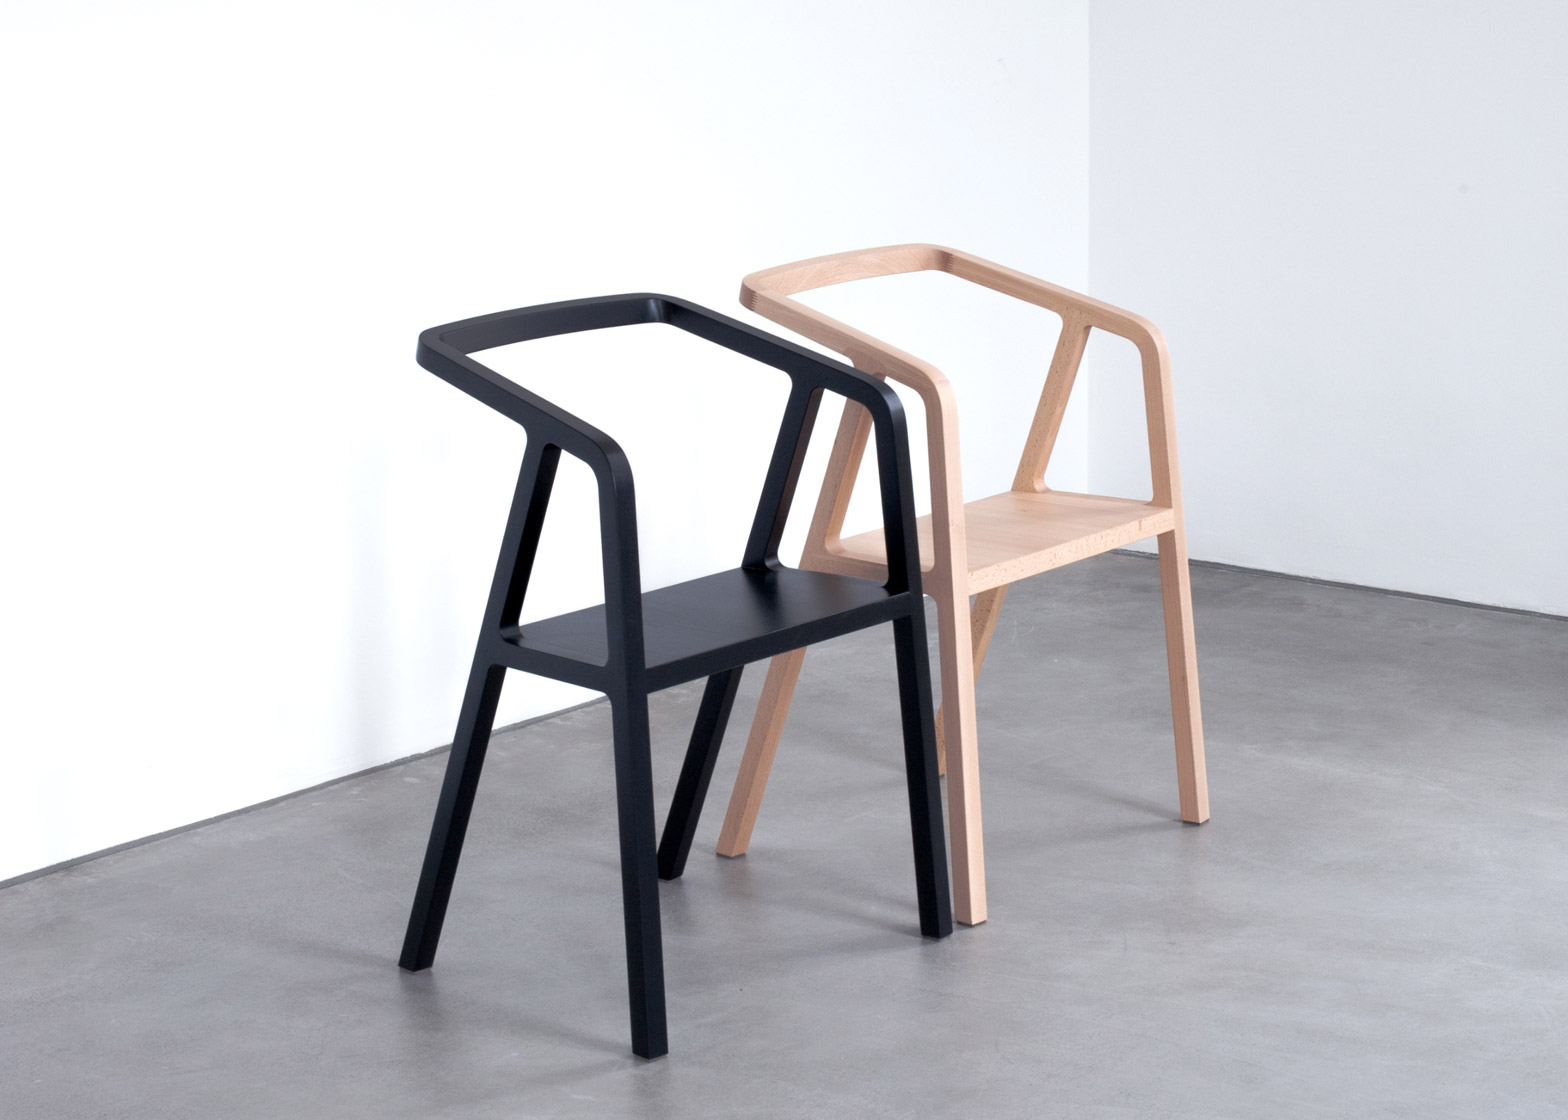 Thomas Feichtners A Chair Uses Traditional Carpentry Joints